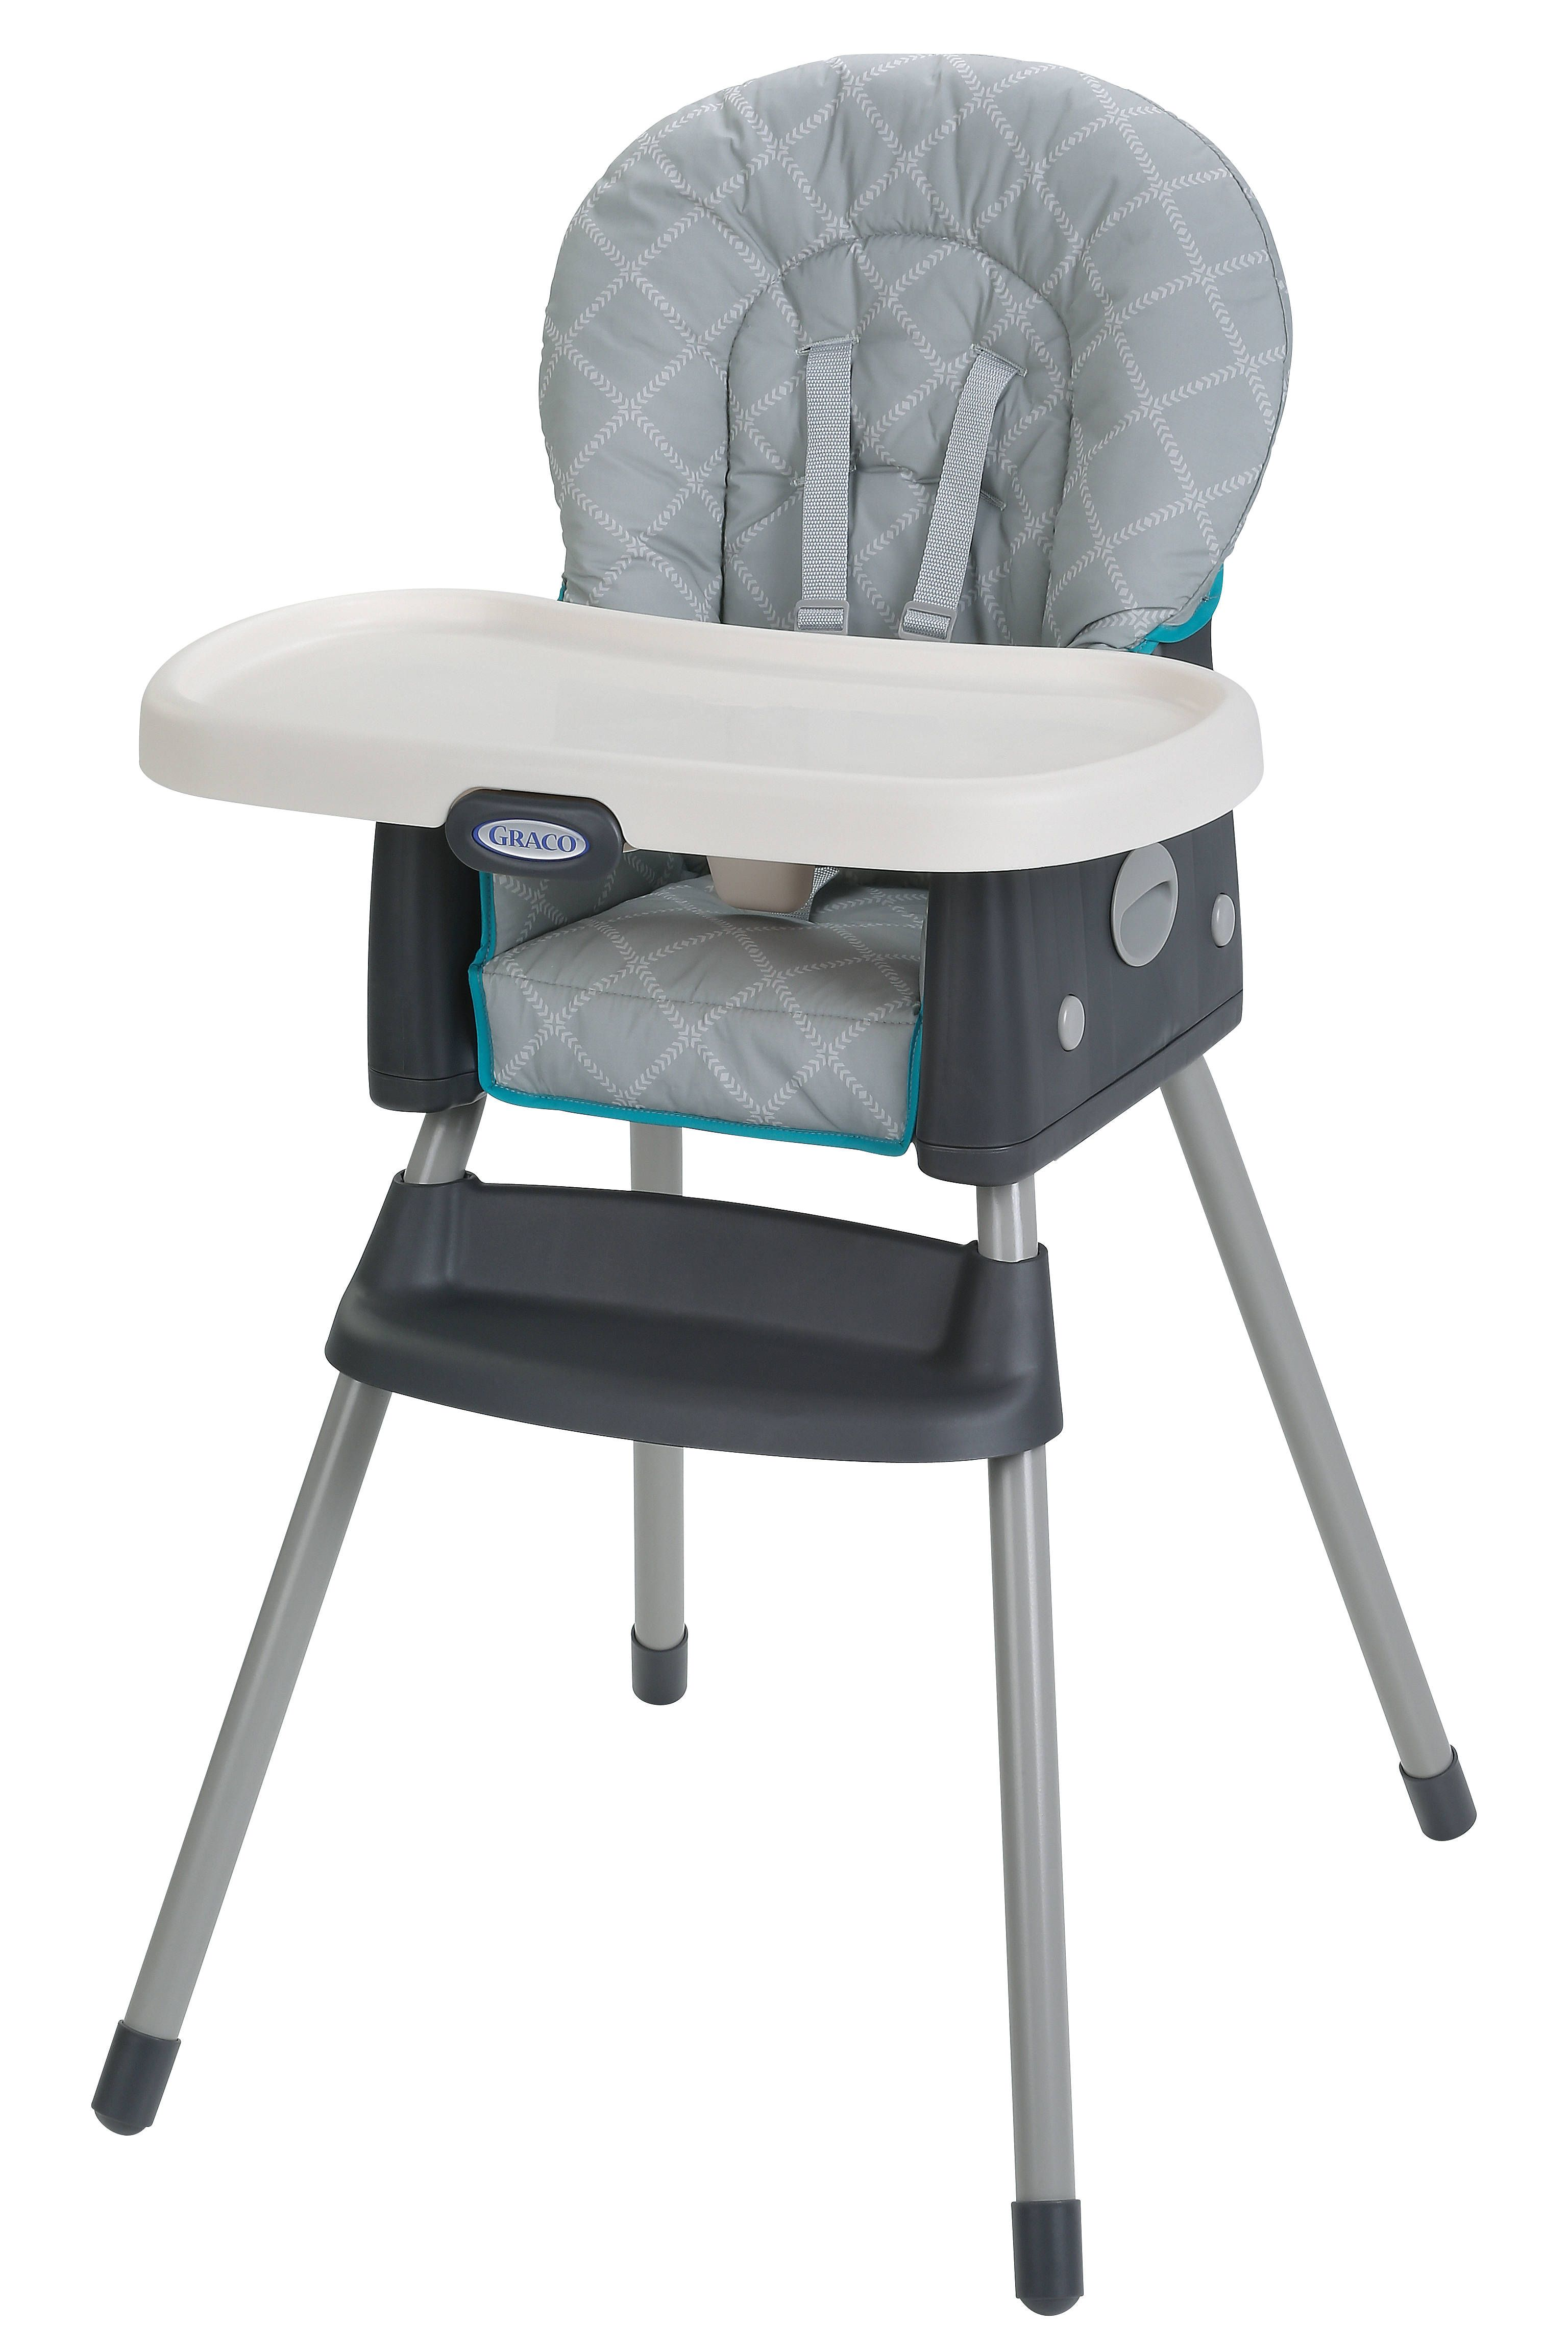 Graco Simpleswitch 2 In 1 Highchair Finch Walmart Com Baby High Chair High Chair Best Baby High Chair